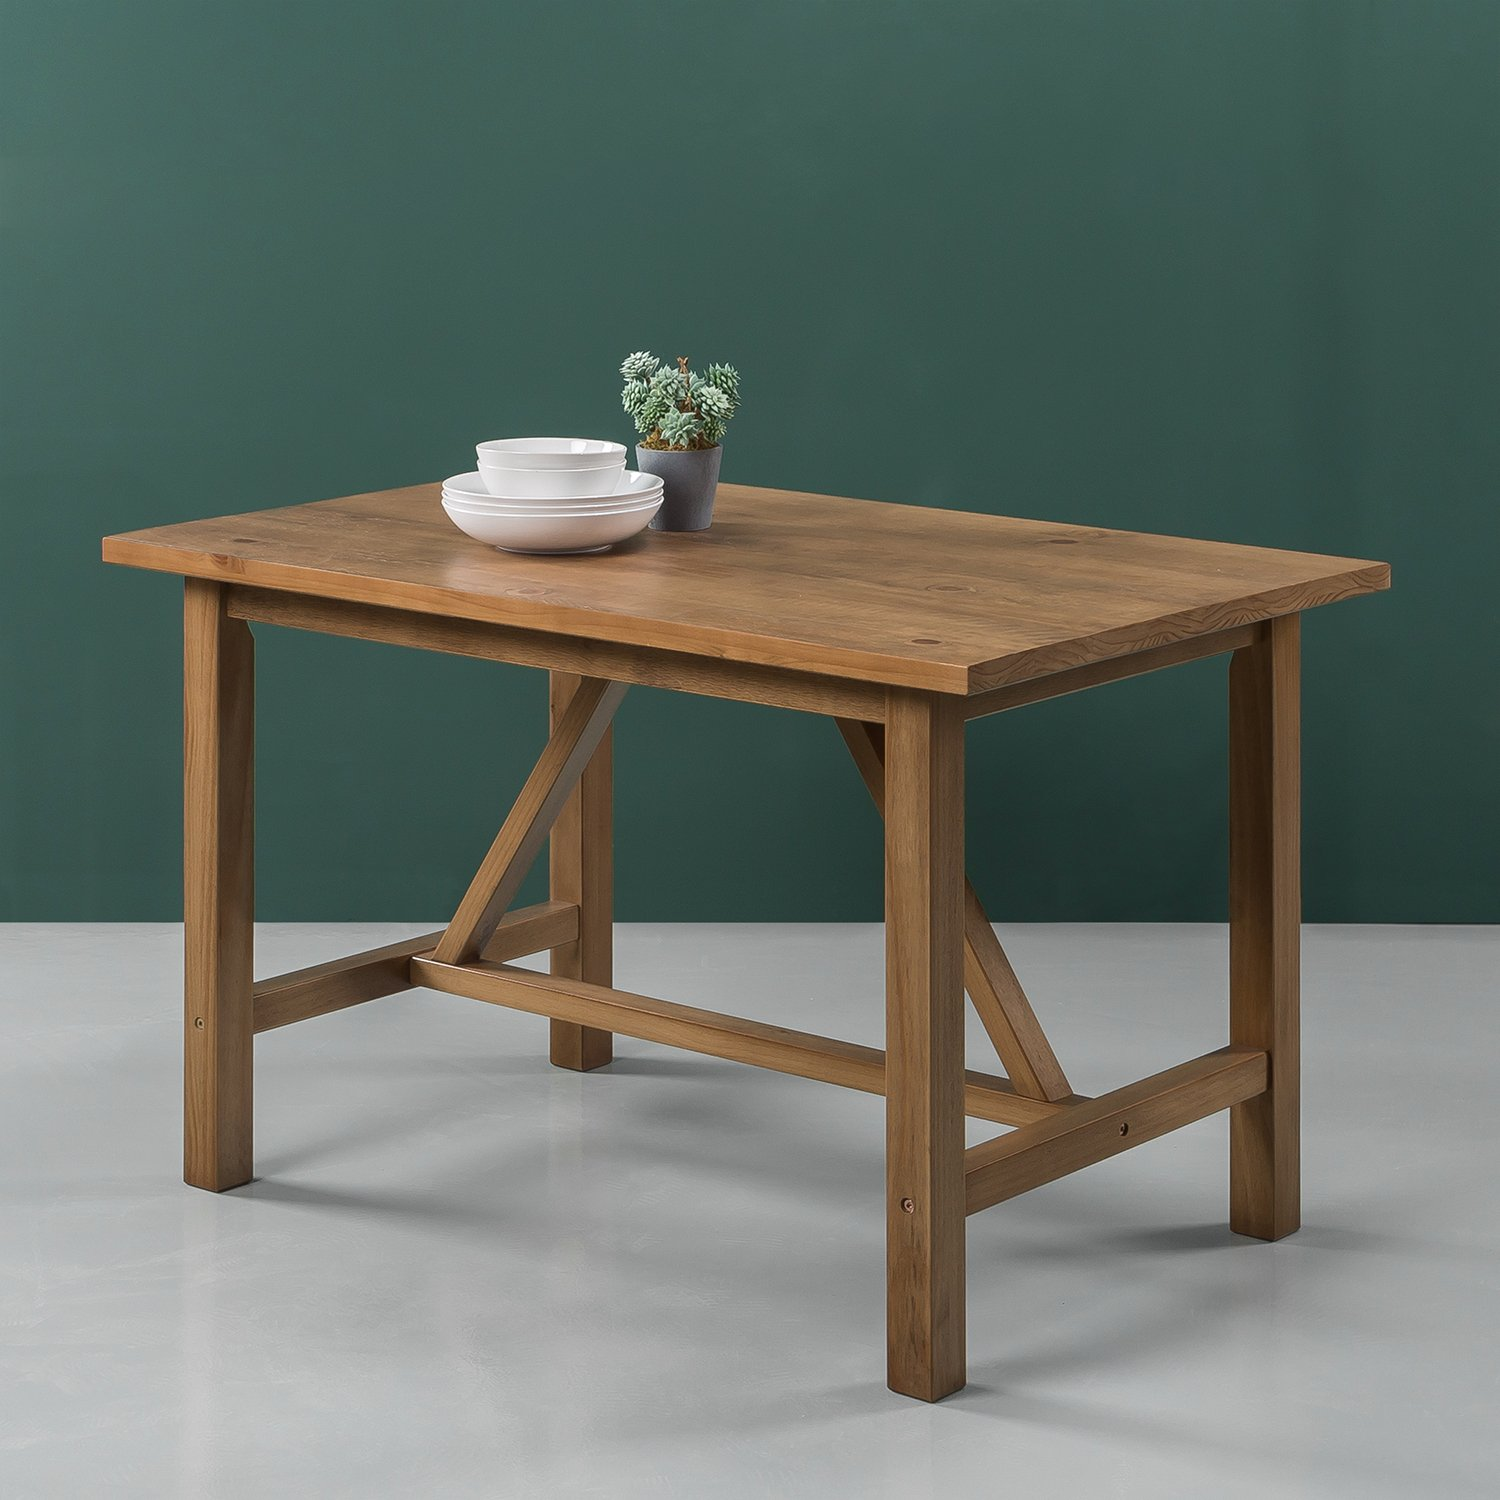 Zinus Brandon Detailed Dining Table in Natural Finish by Zinus (Image #4)